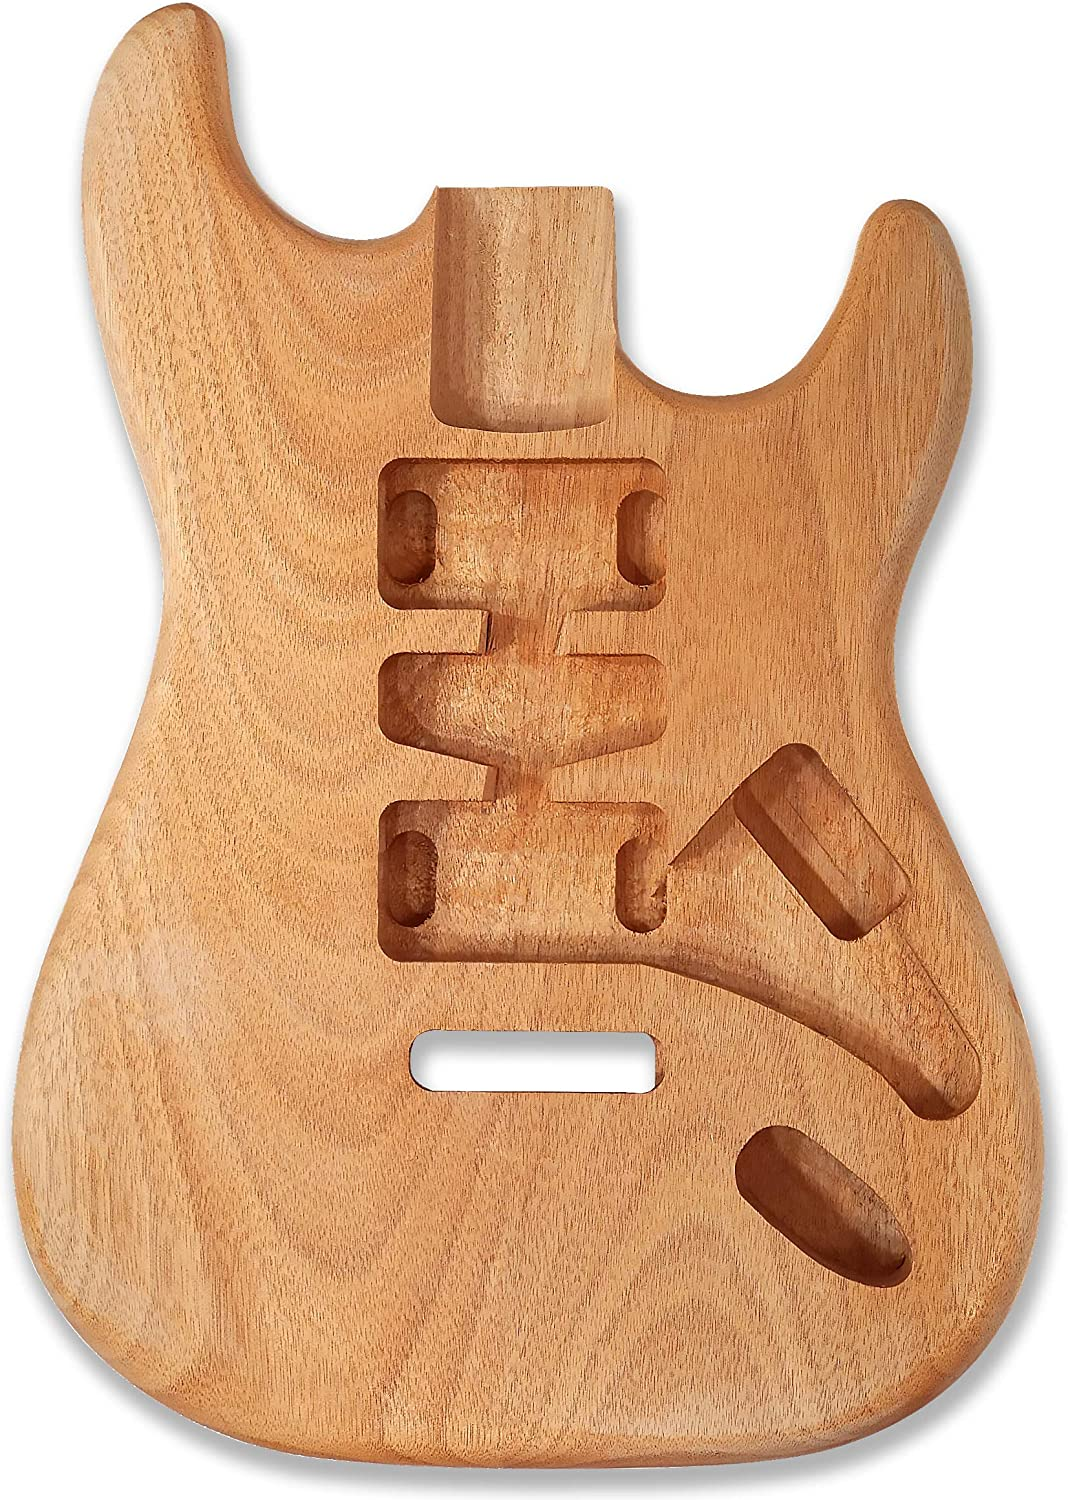 Maple Wood Unfinished Electric Guitar Body for Fender Strat ST Guitar DIY Parts